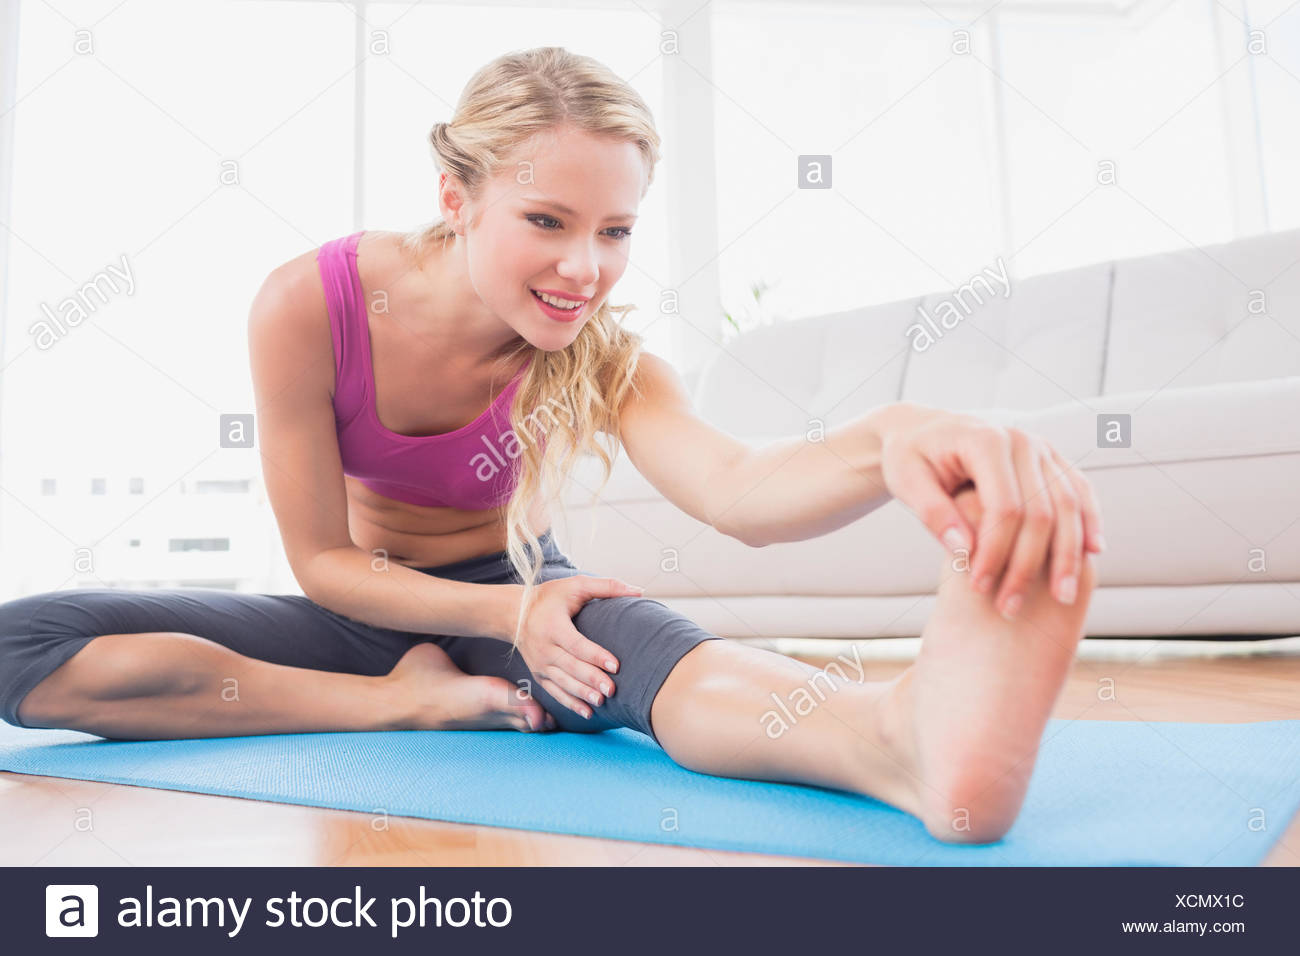 Toned blonde stretching on exercise mat - Stock Image